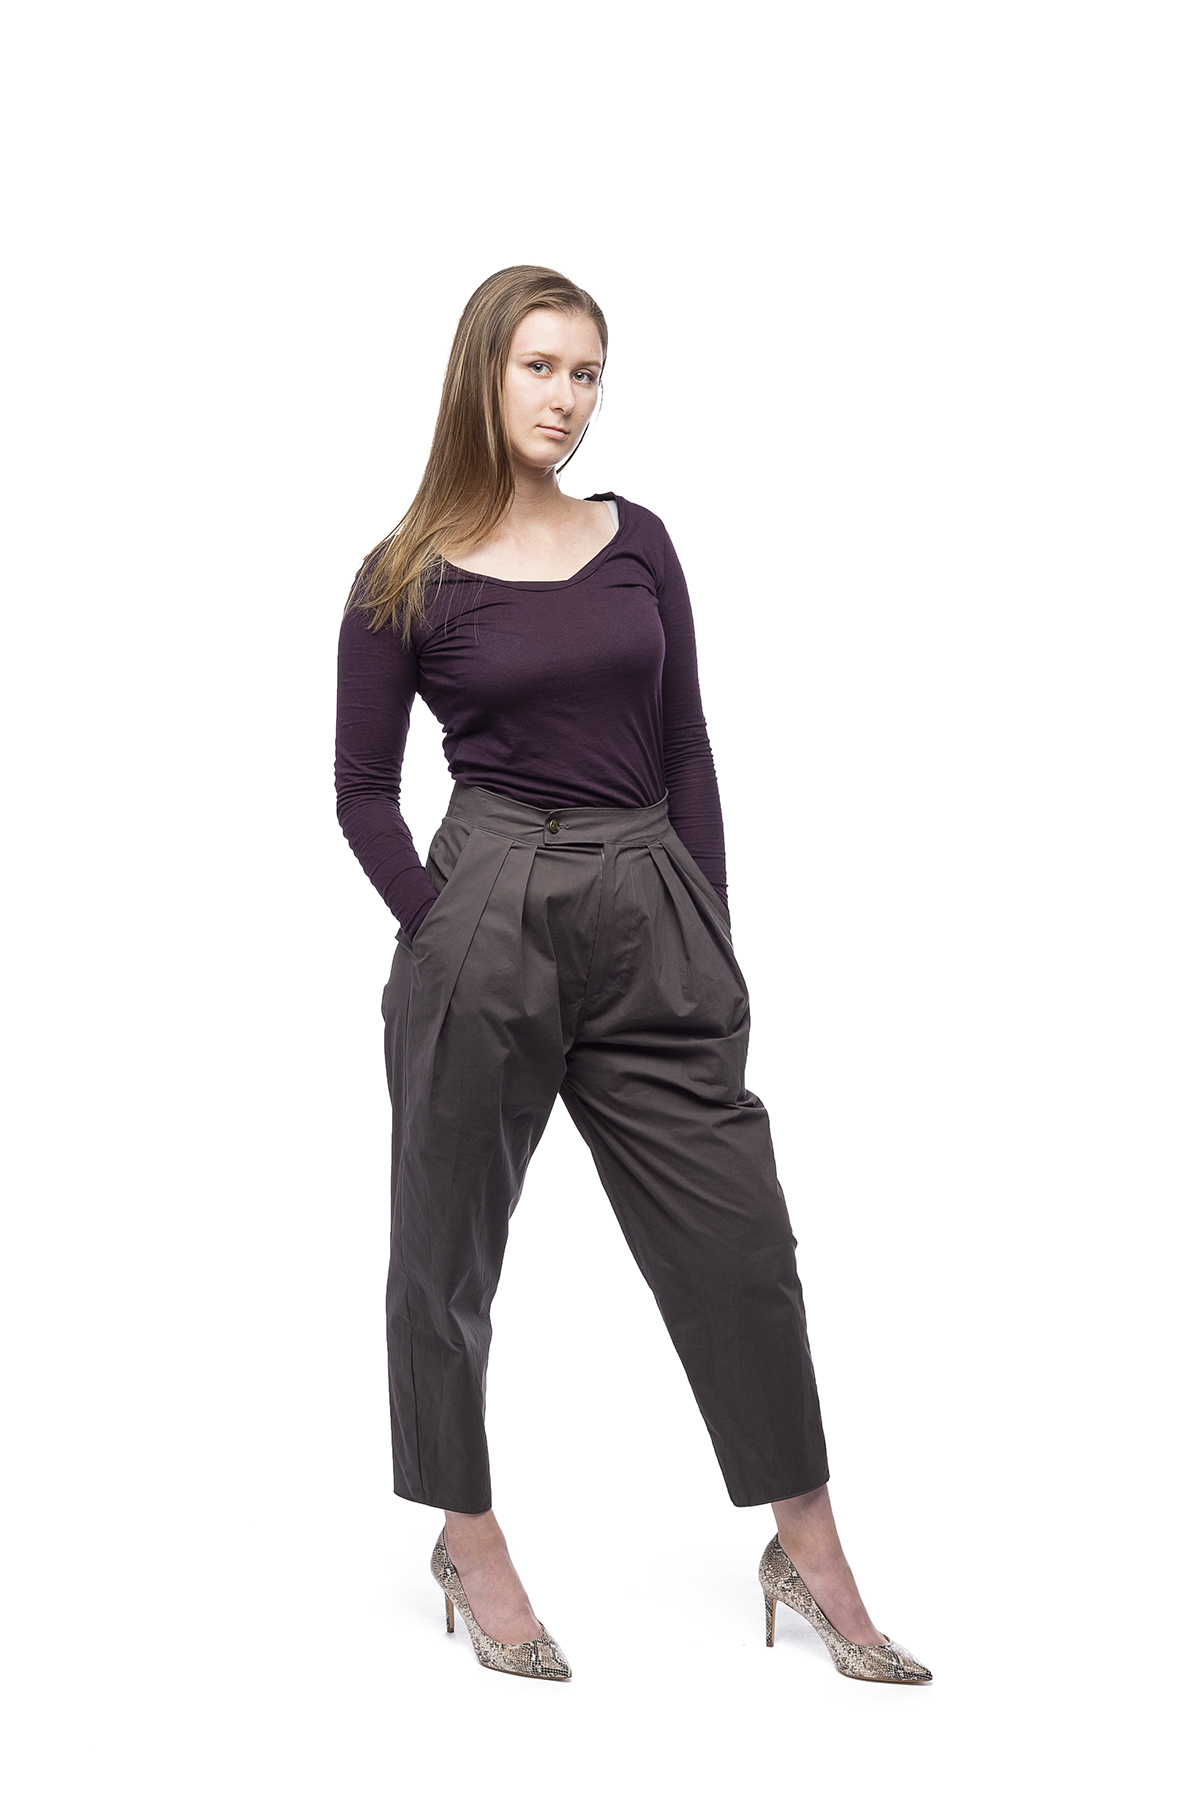 A design of a long-sleeved, dark purple top with high-rise pants and heels.